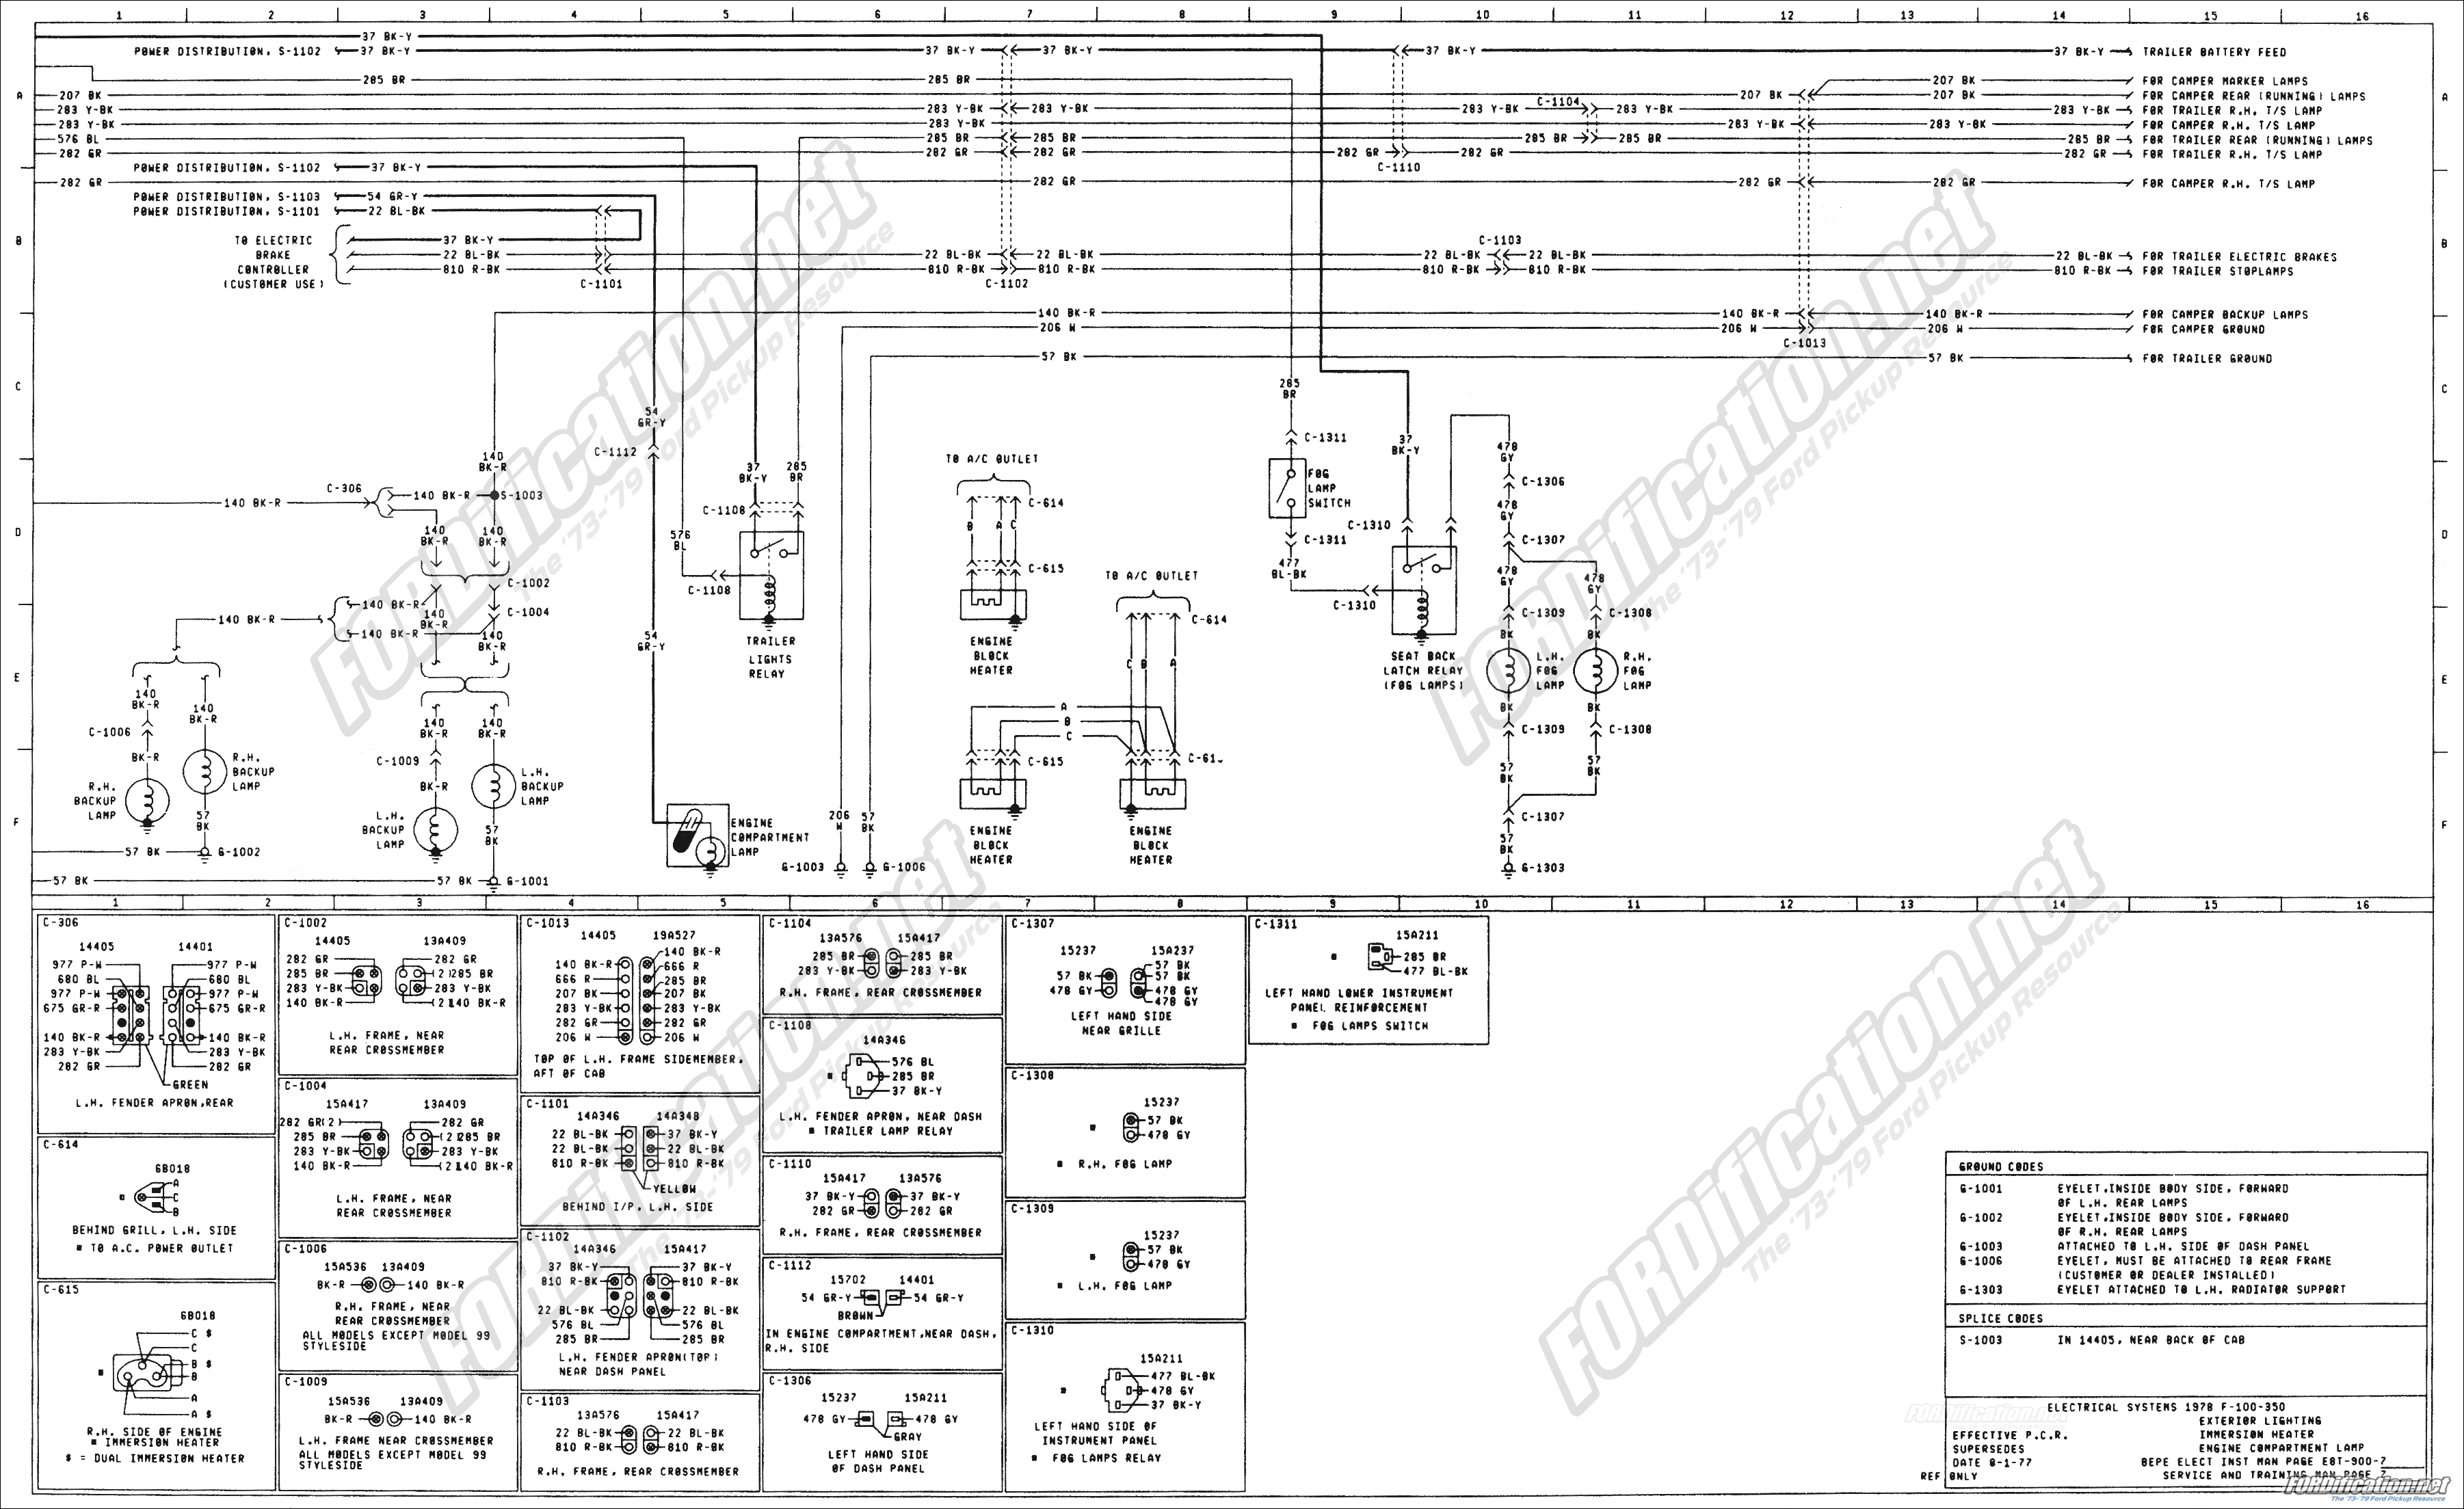 1973 1979 Ford Truck Wiring Diagrams Schematics 78 Chevy C10 Ke Light Diagram Get Free Image About Page 08